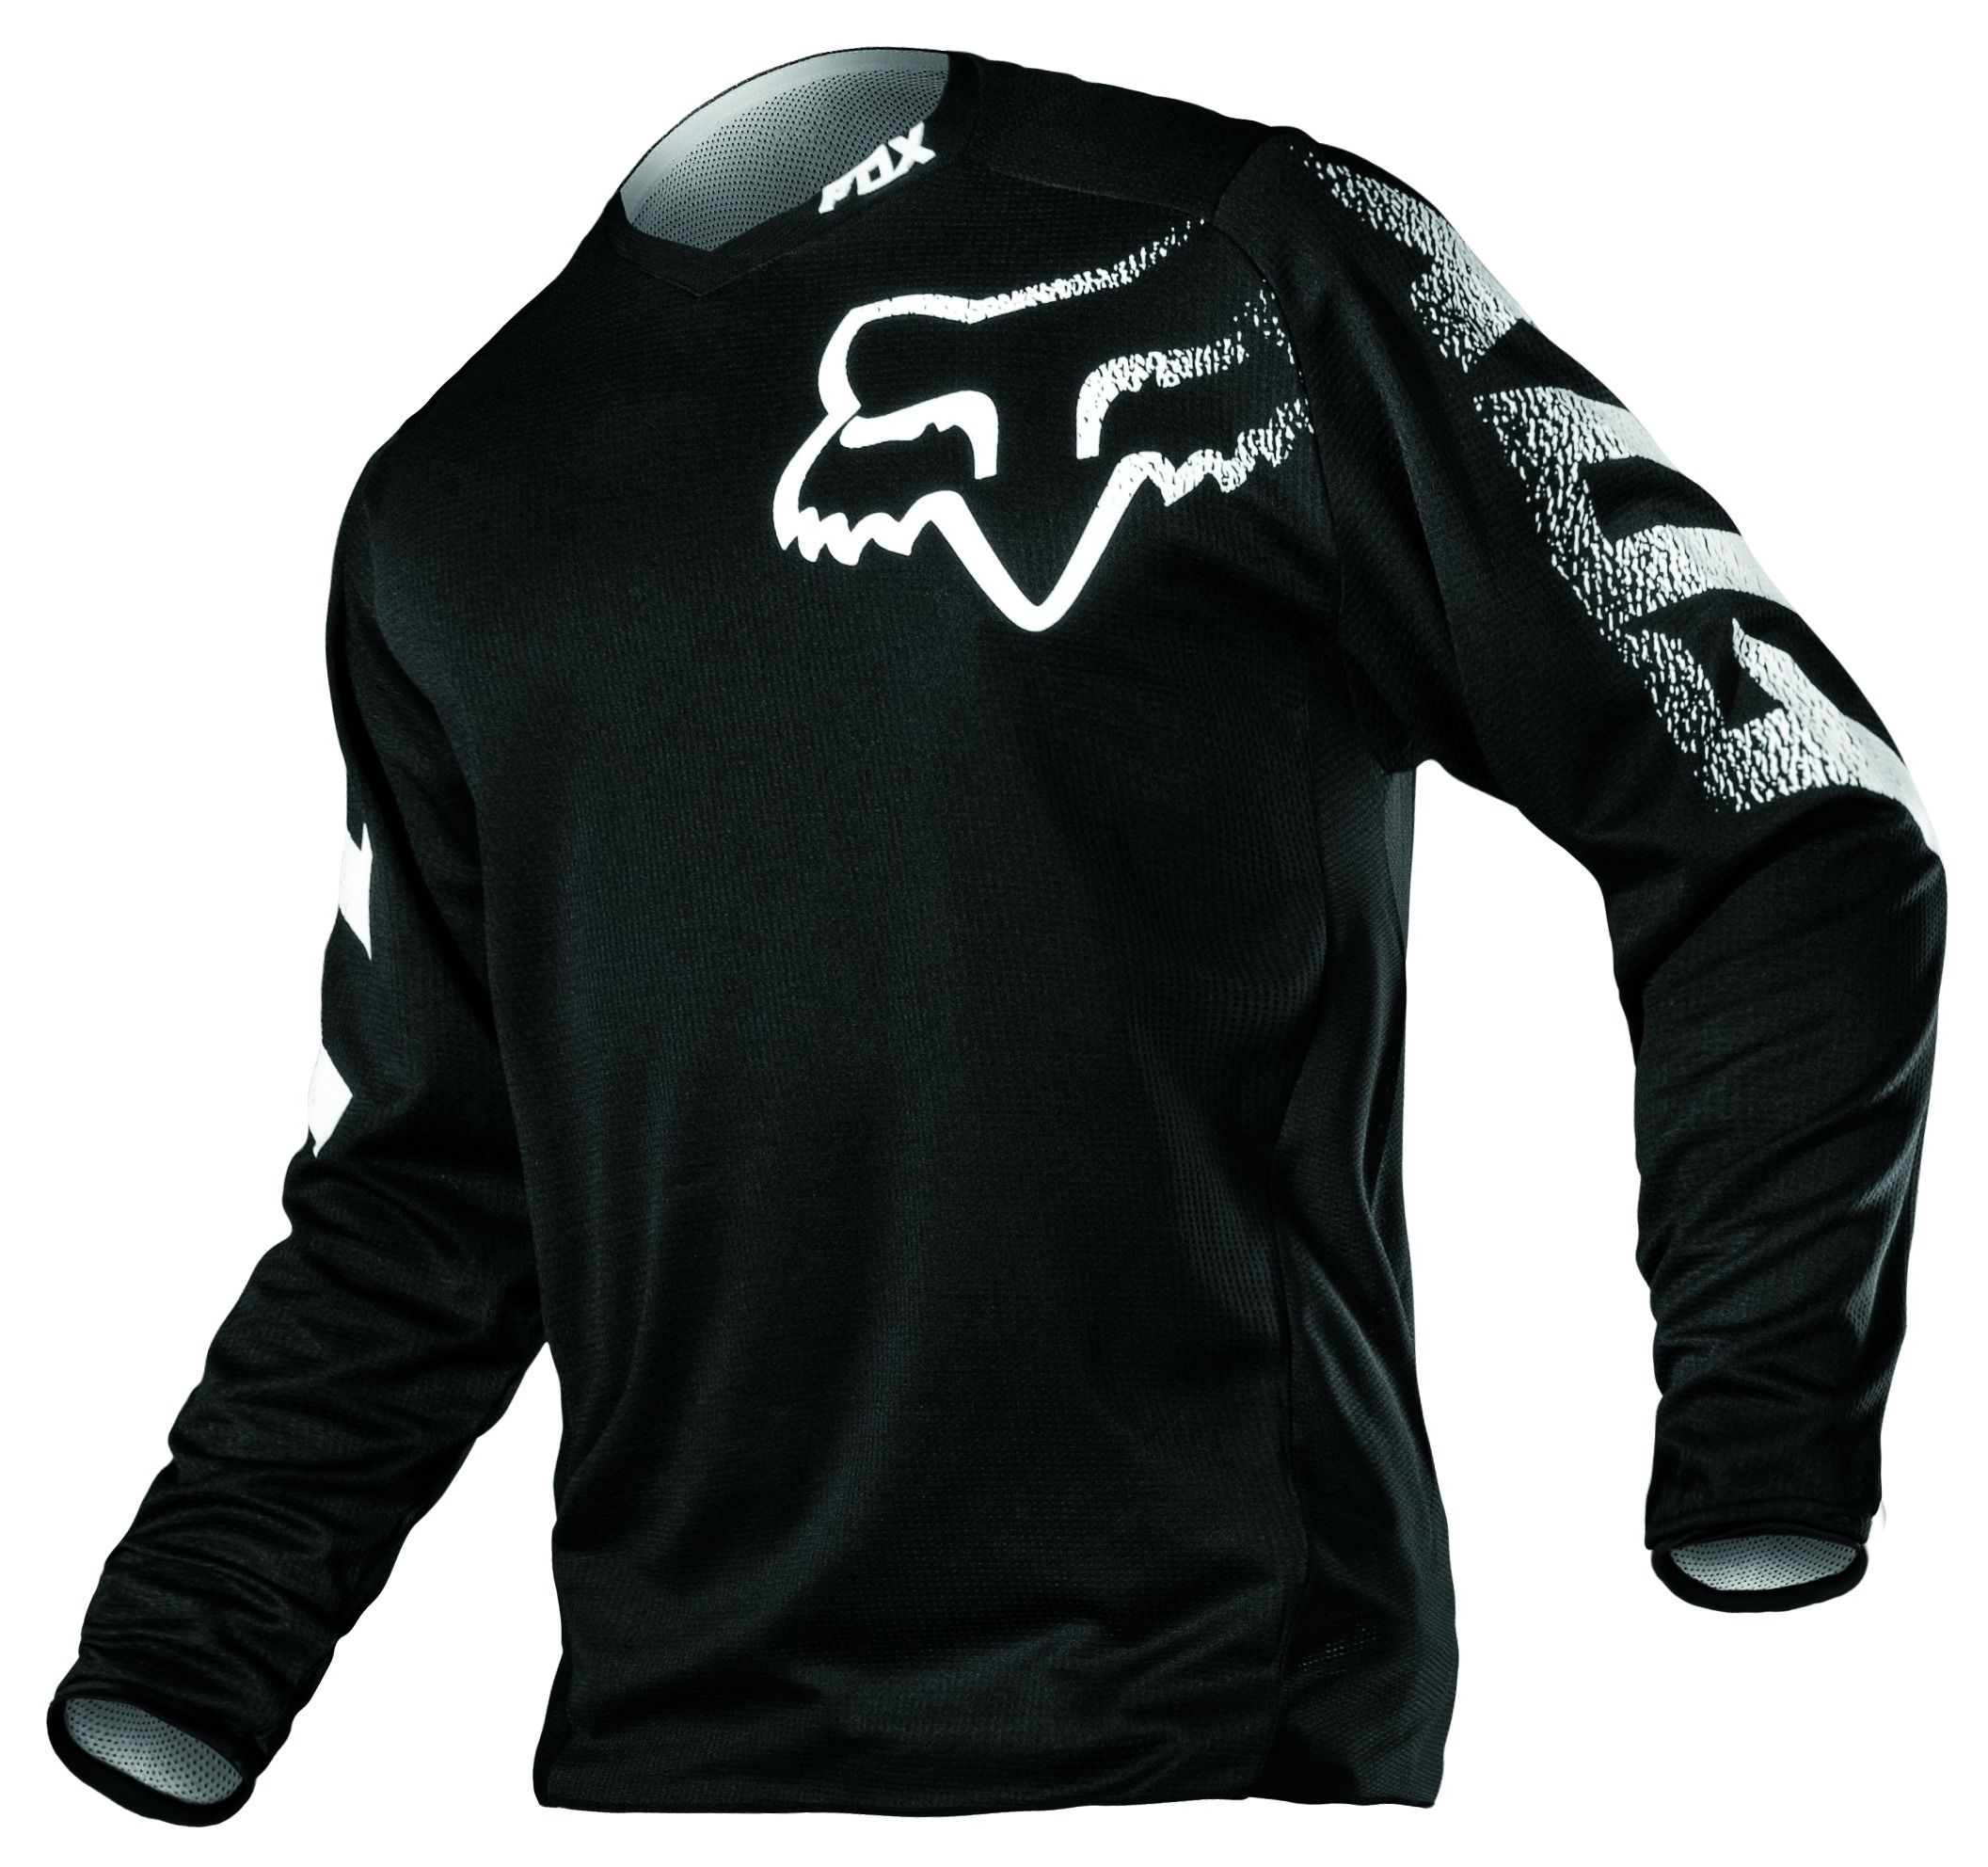 Flexible Style In A Full Function Chassis The Top Selling Blackout Jersey Can Be Paired With Your Favorite Pant Dirt Bike Gear Fox Racing Clothing Fox Racing